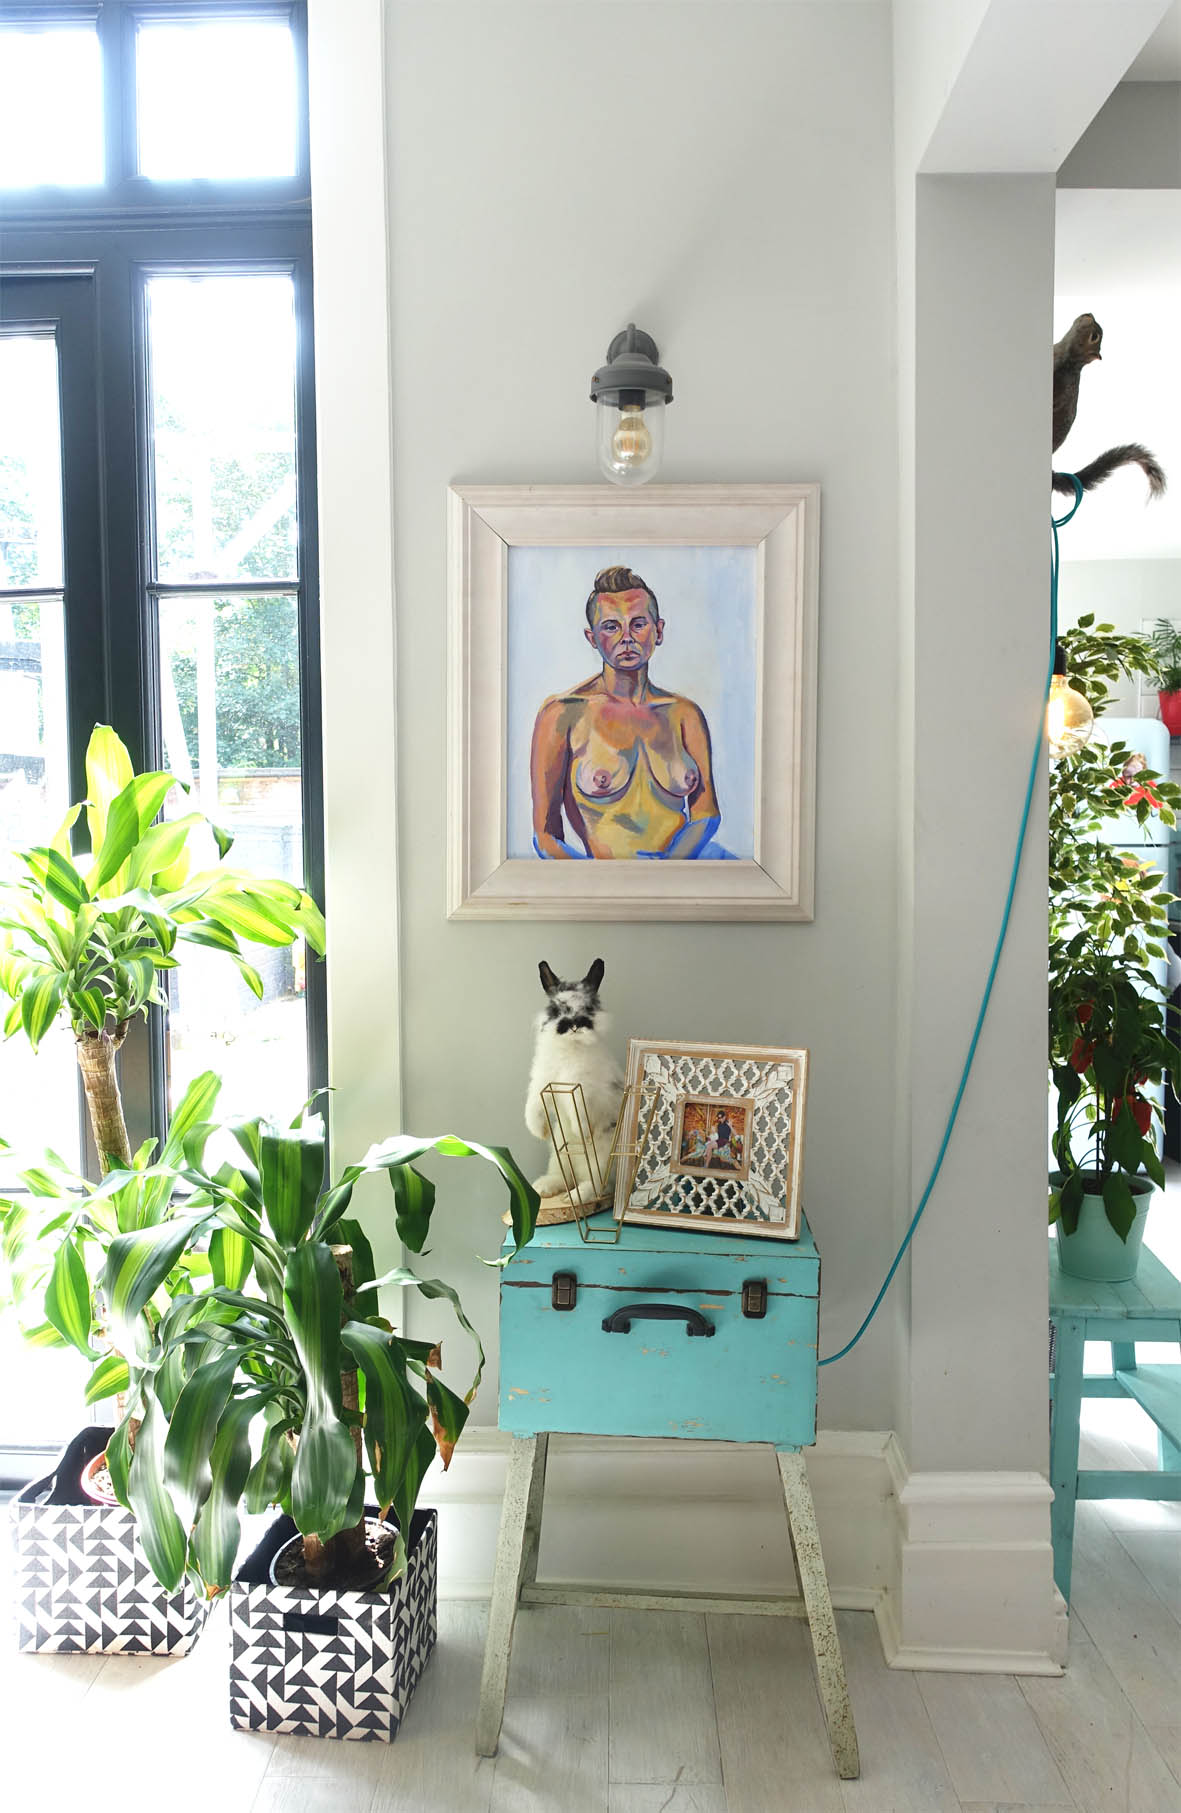 A fabulously styled selection of art, objects, plants and lighting brighten up what would otherwise be a blank, unused area next to the door.